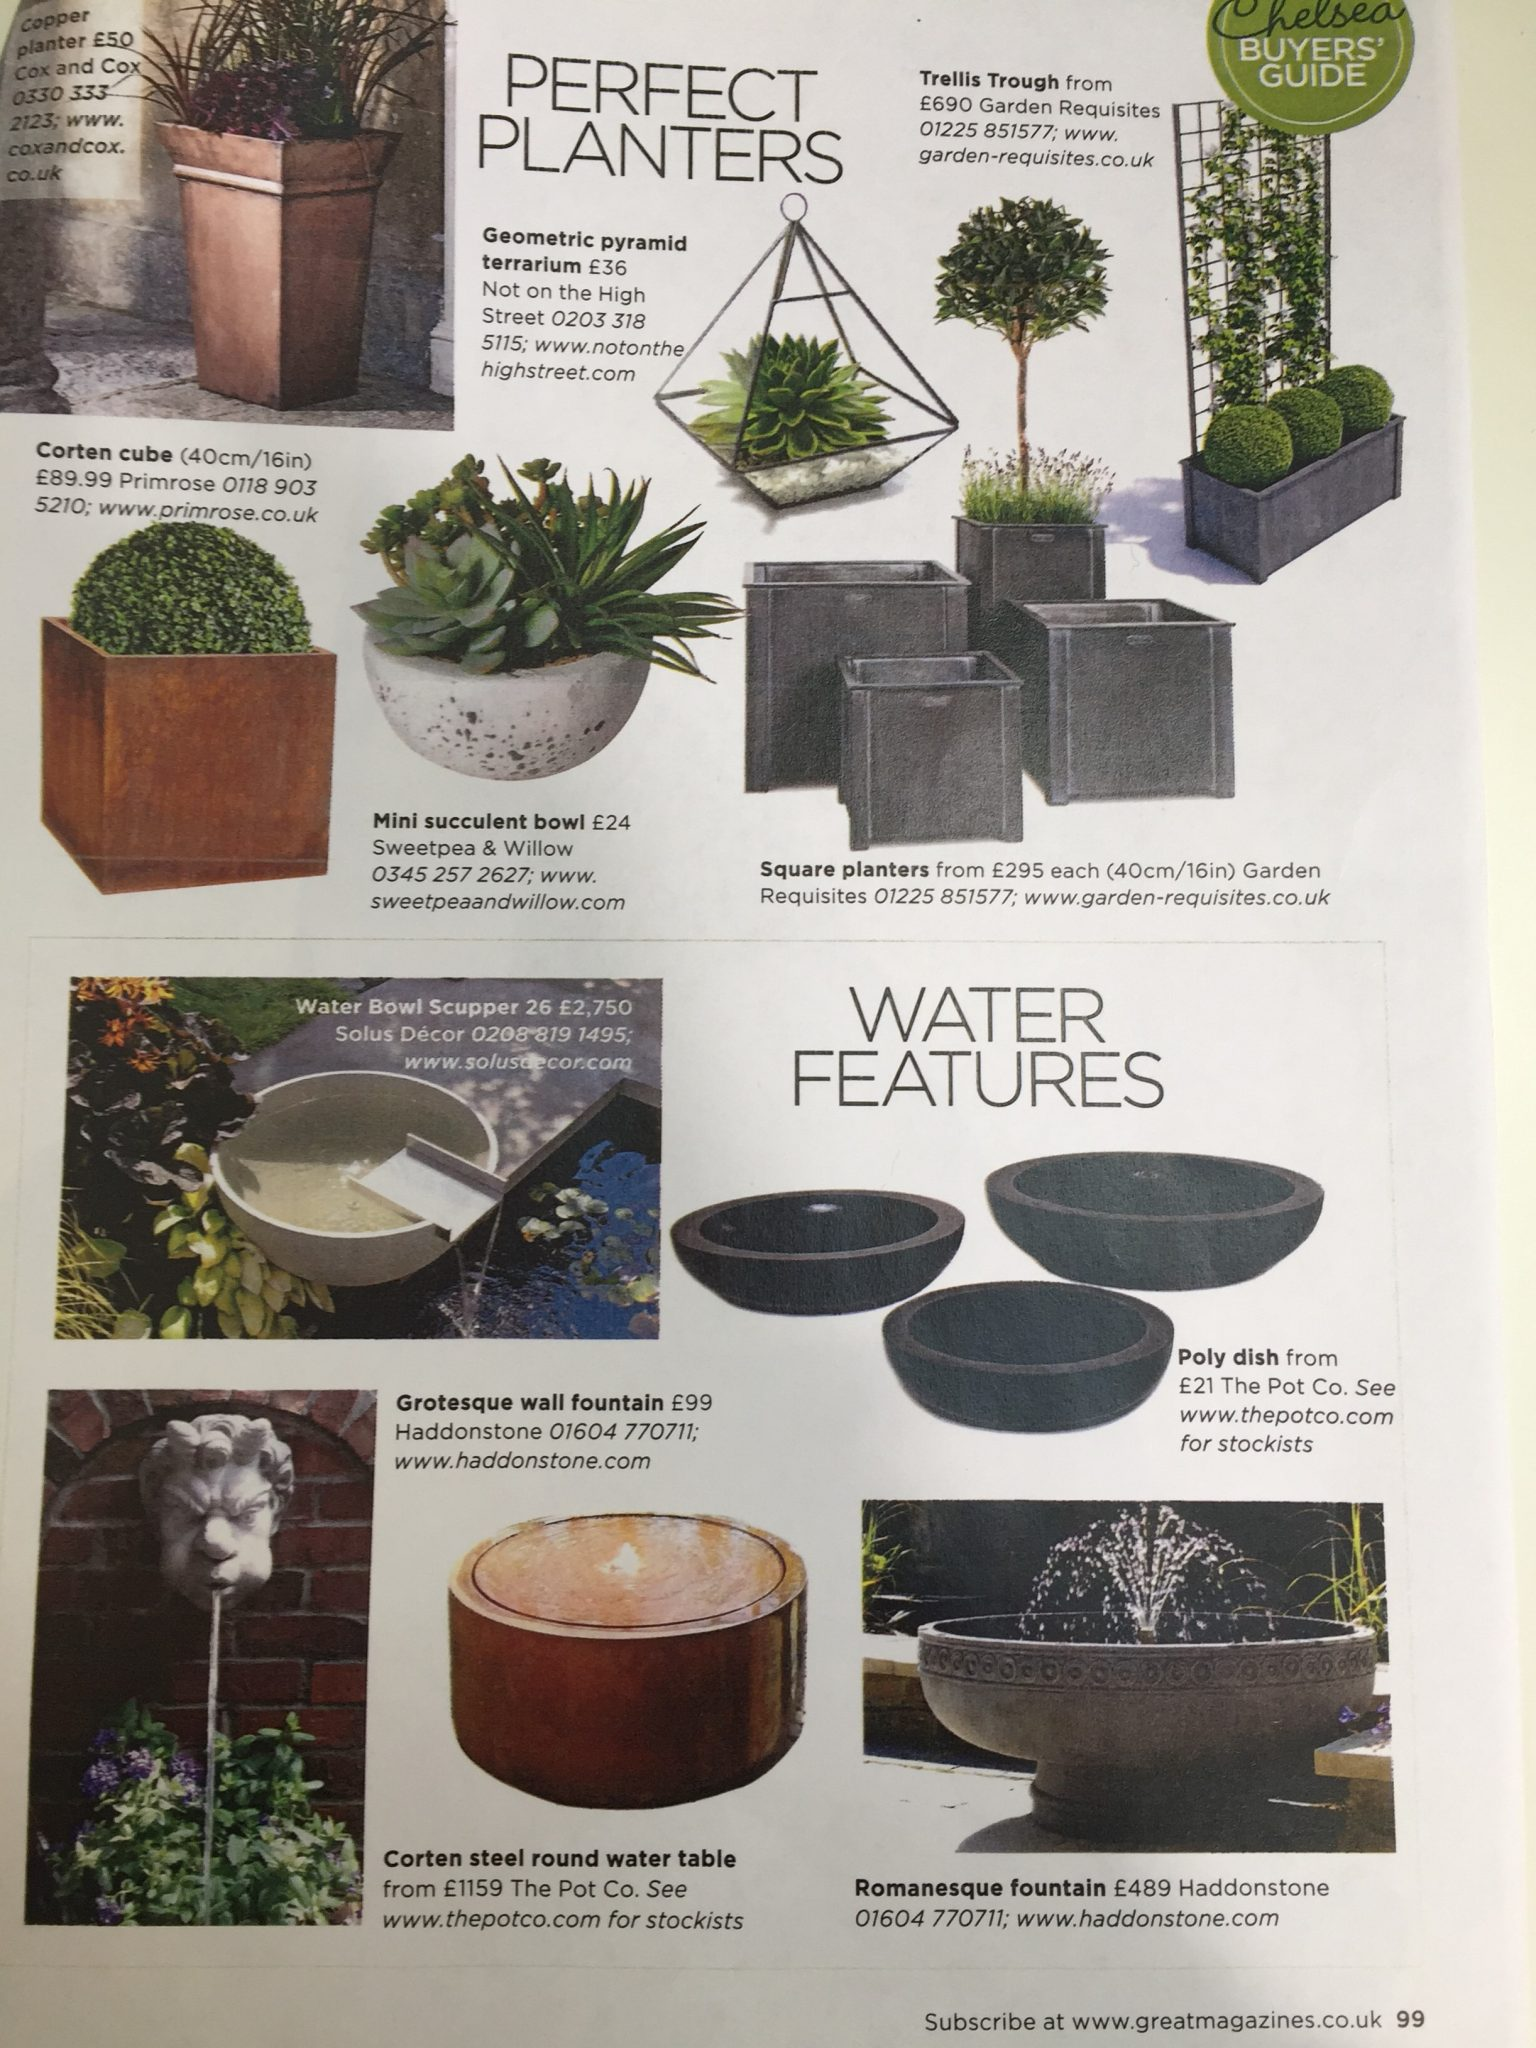 Solus products in Garden Answers, May 2017